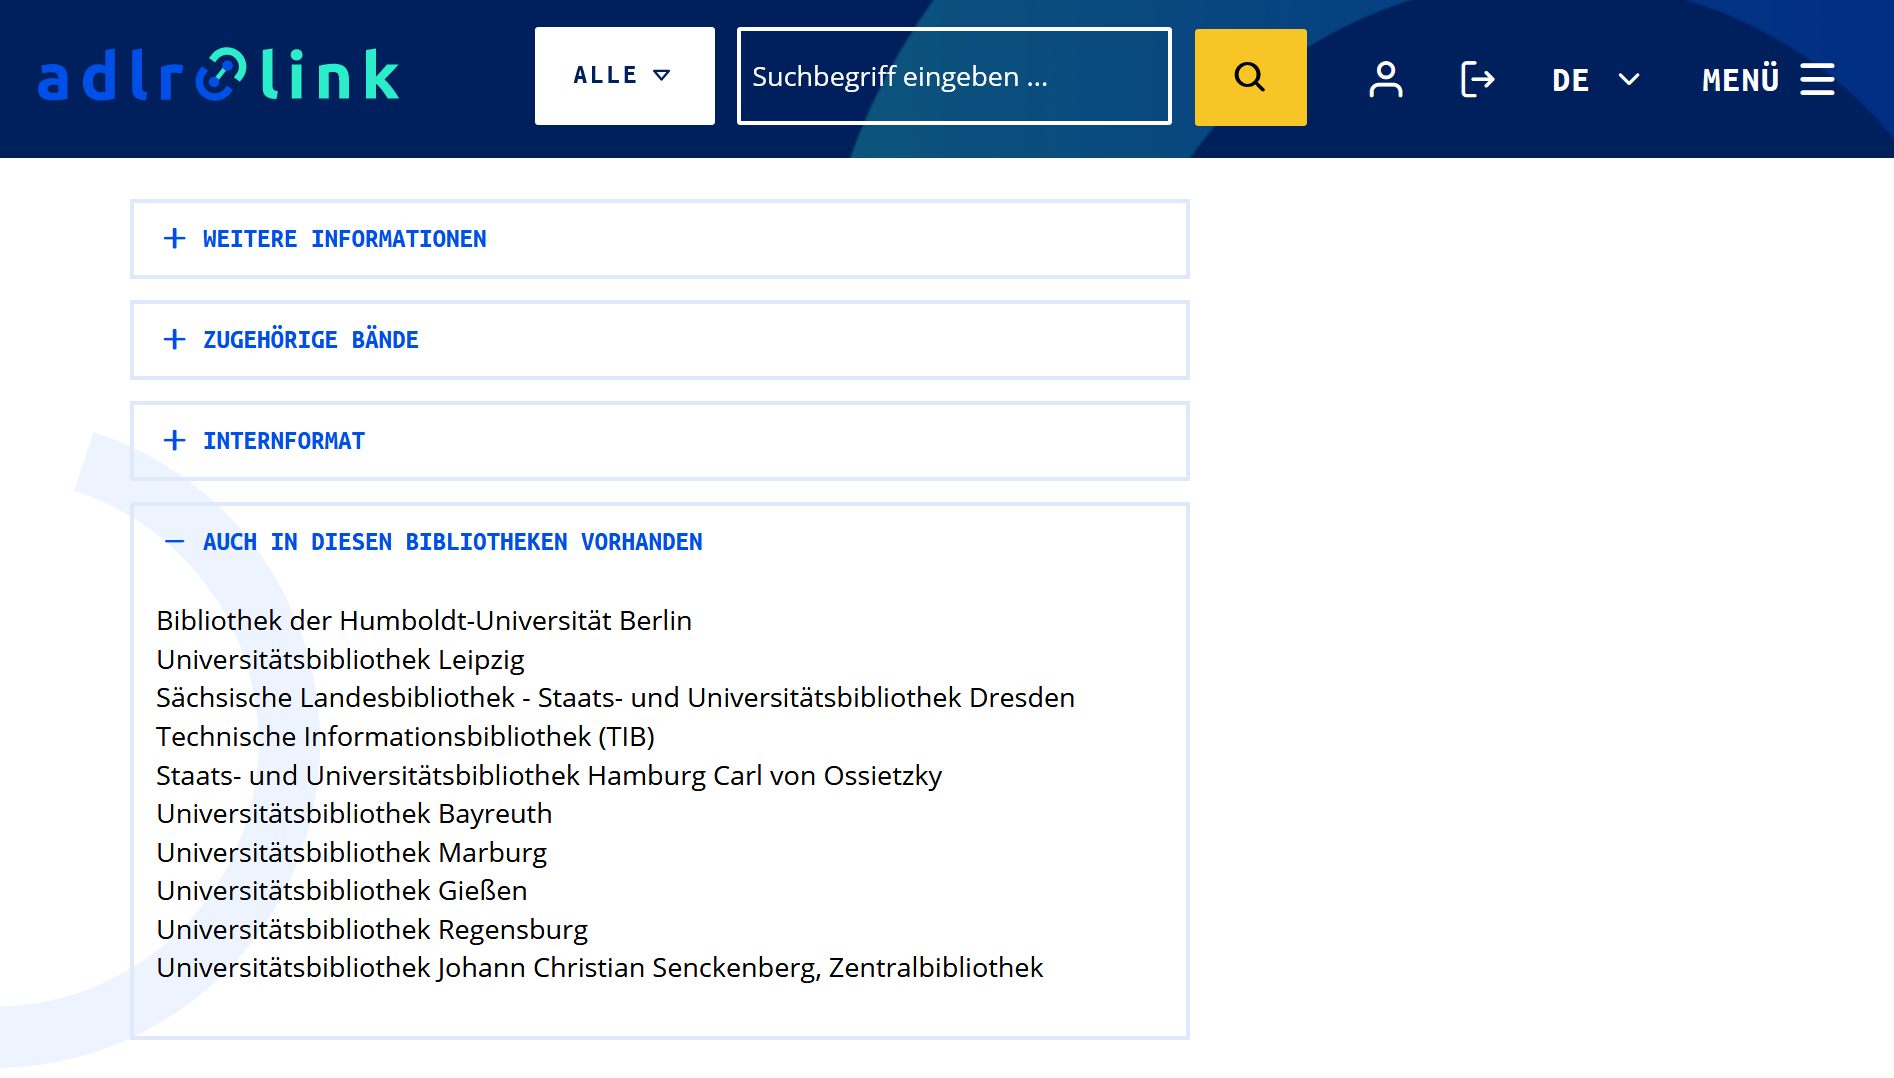 Integration of Worlcat availability information in the catalog frontend of adlr.link